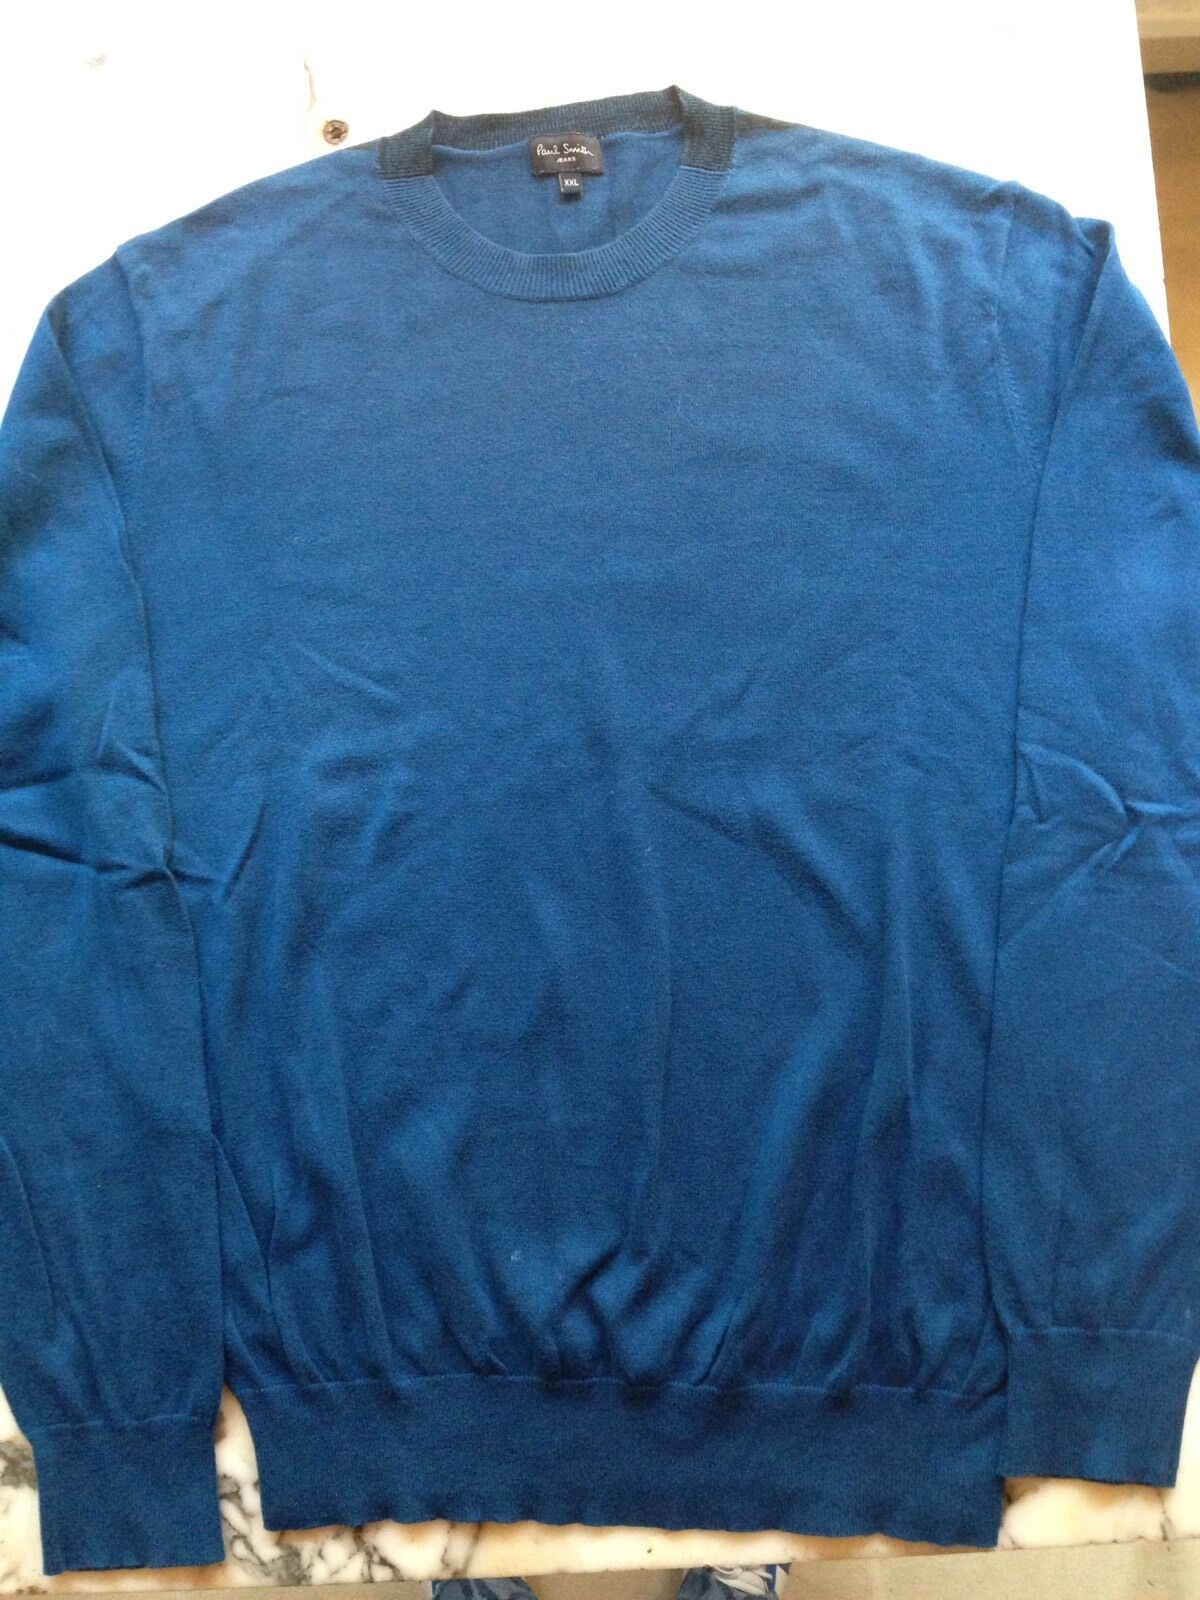 Paul Smith  jeans bluee cotton  pull over jumper size XXL